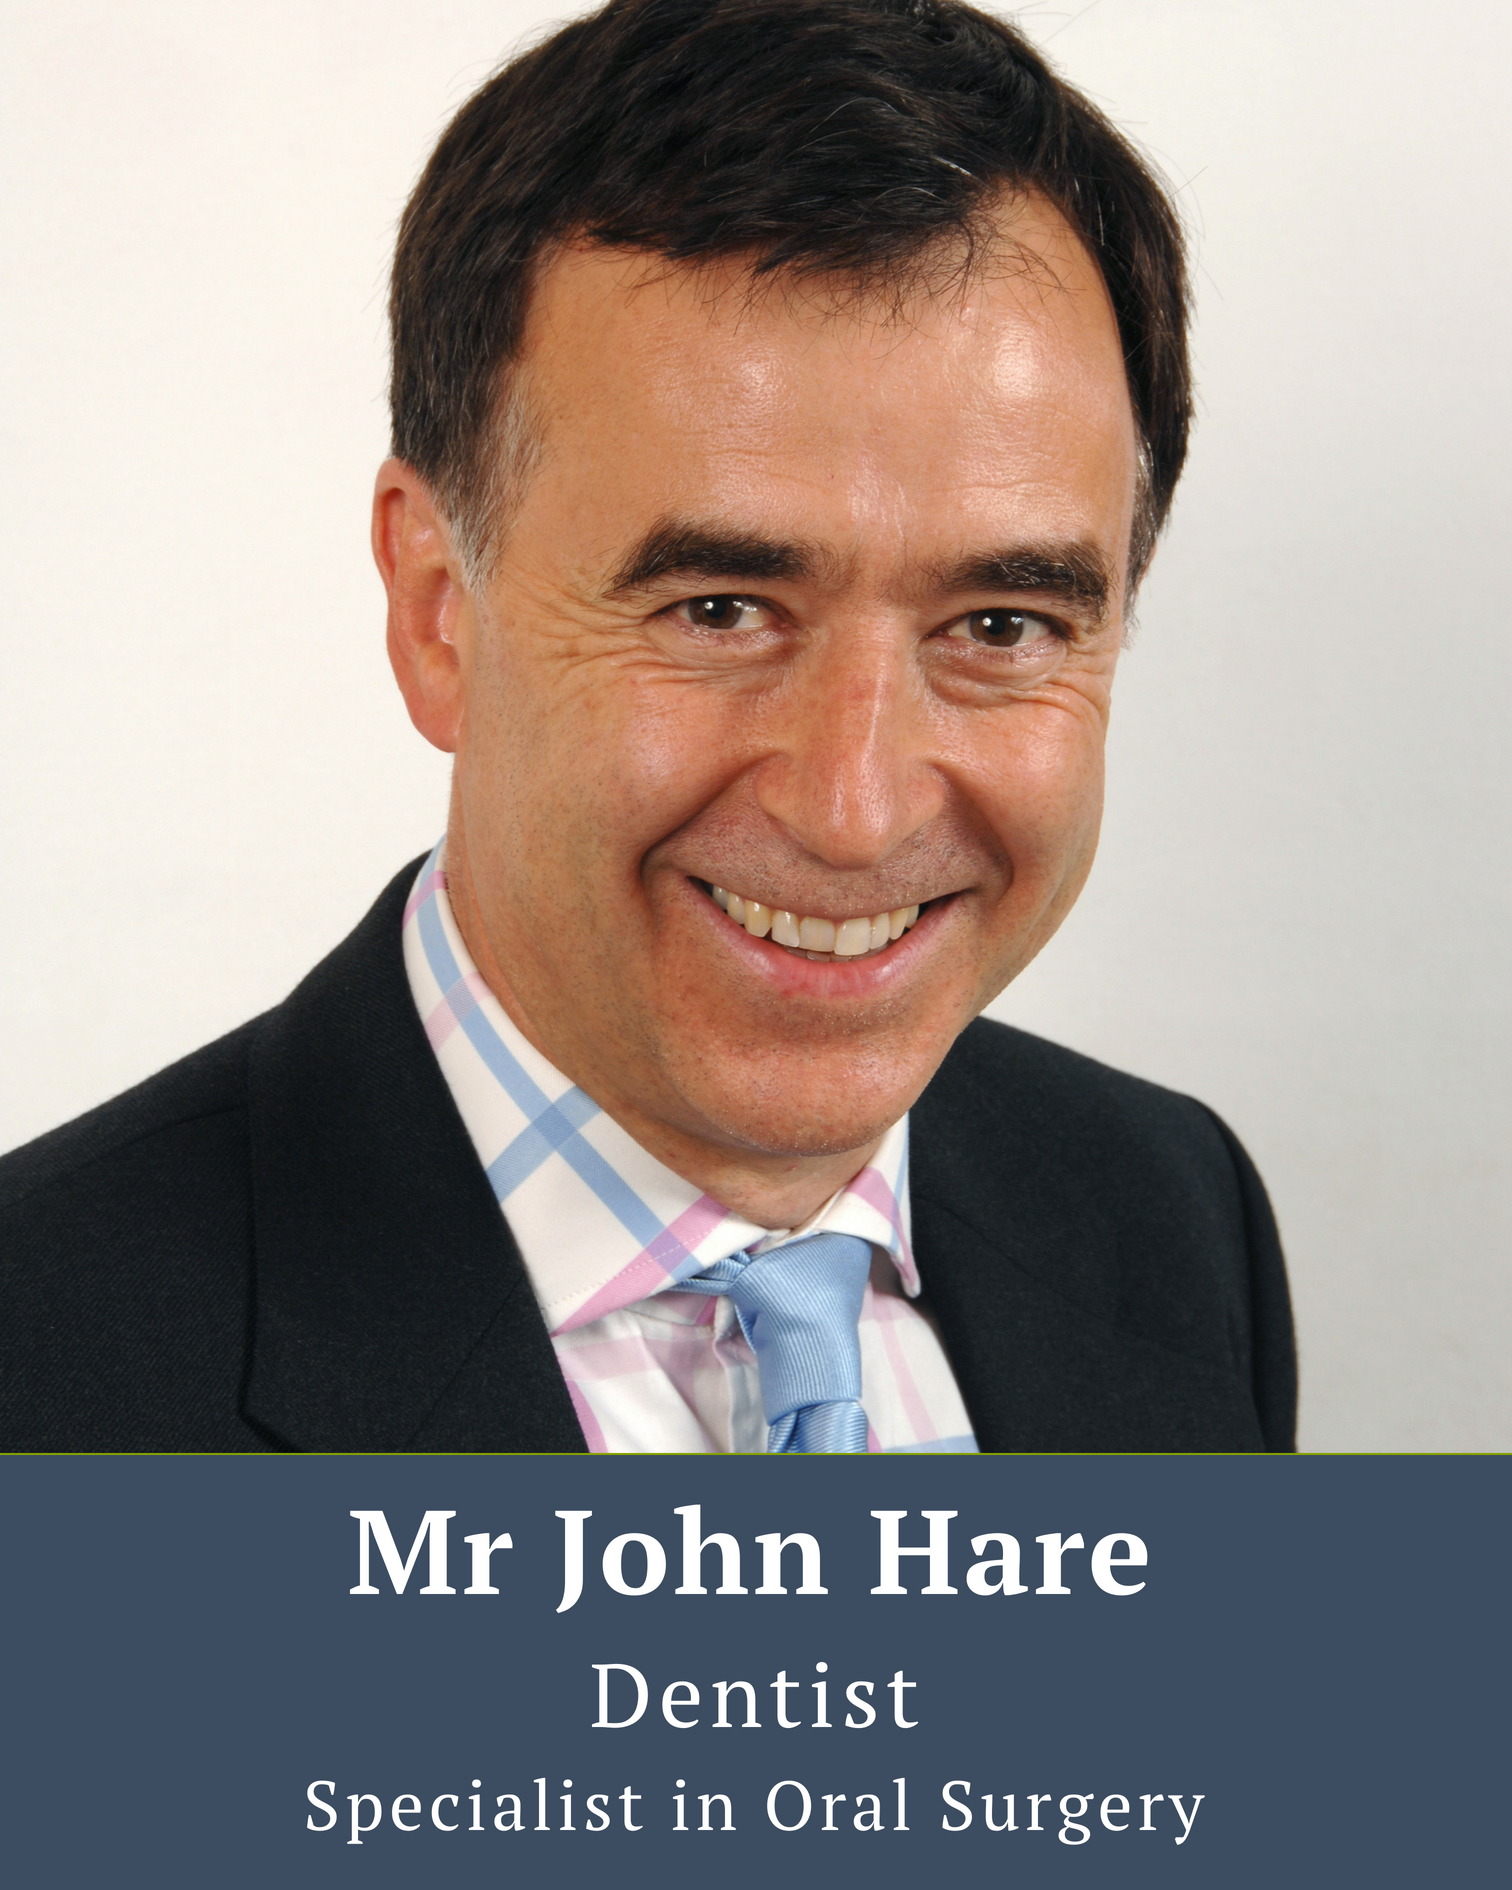 Mr John Hare Dentist specialist in oral surgery